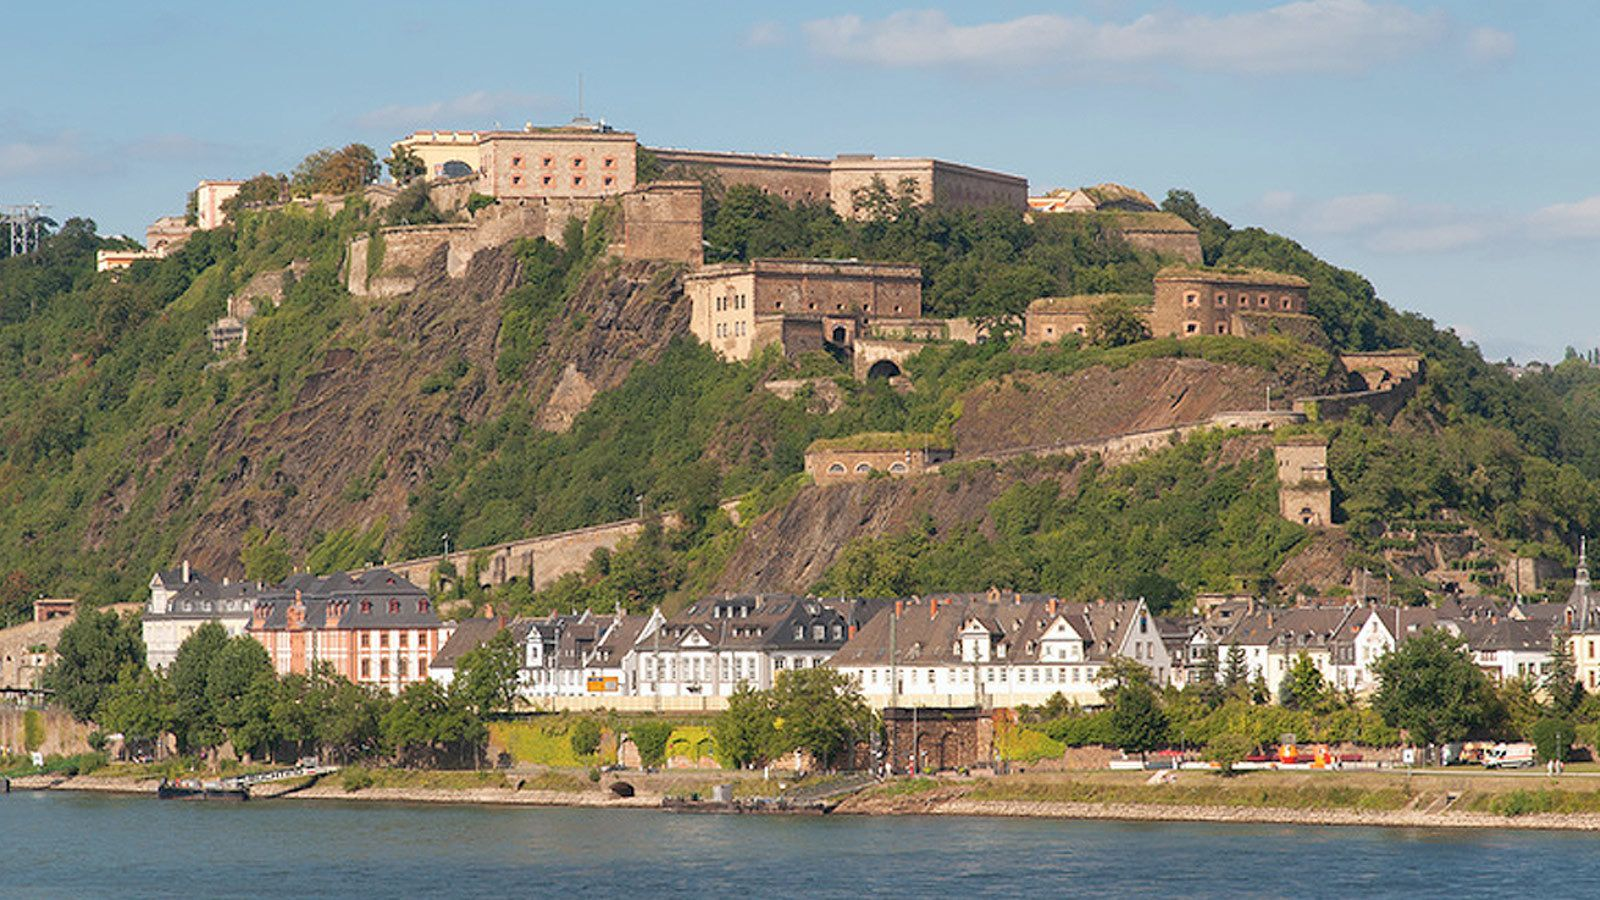 Day view of the Ehrenbreitstein Fortress in Germany